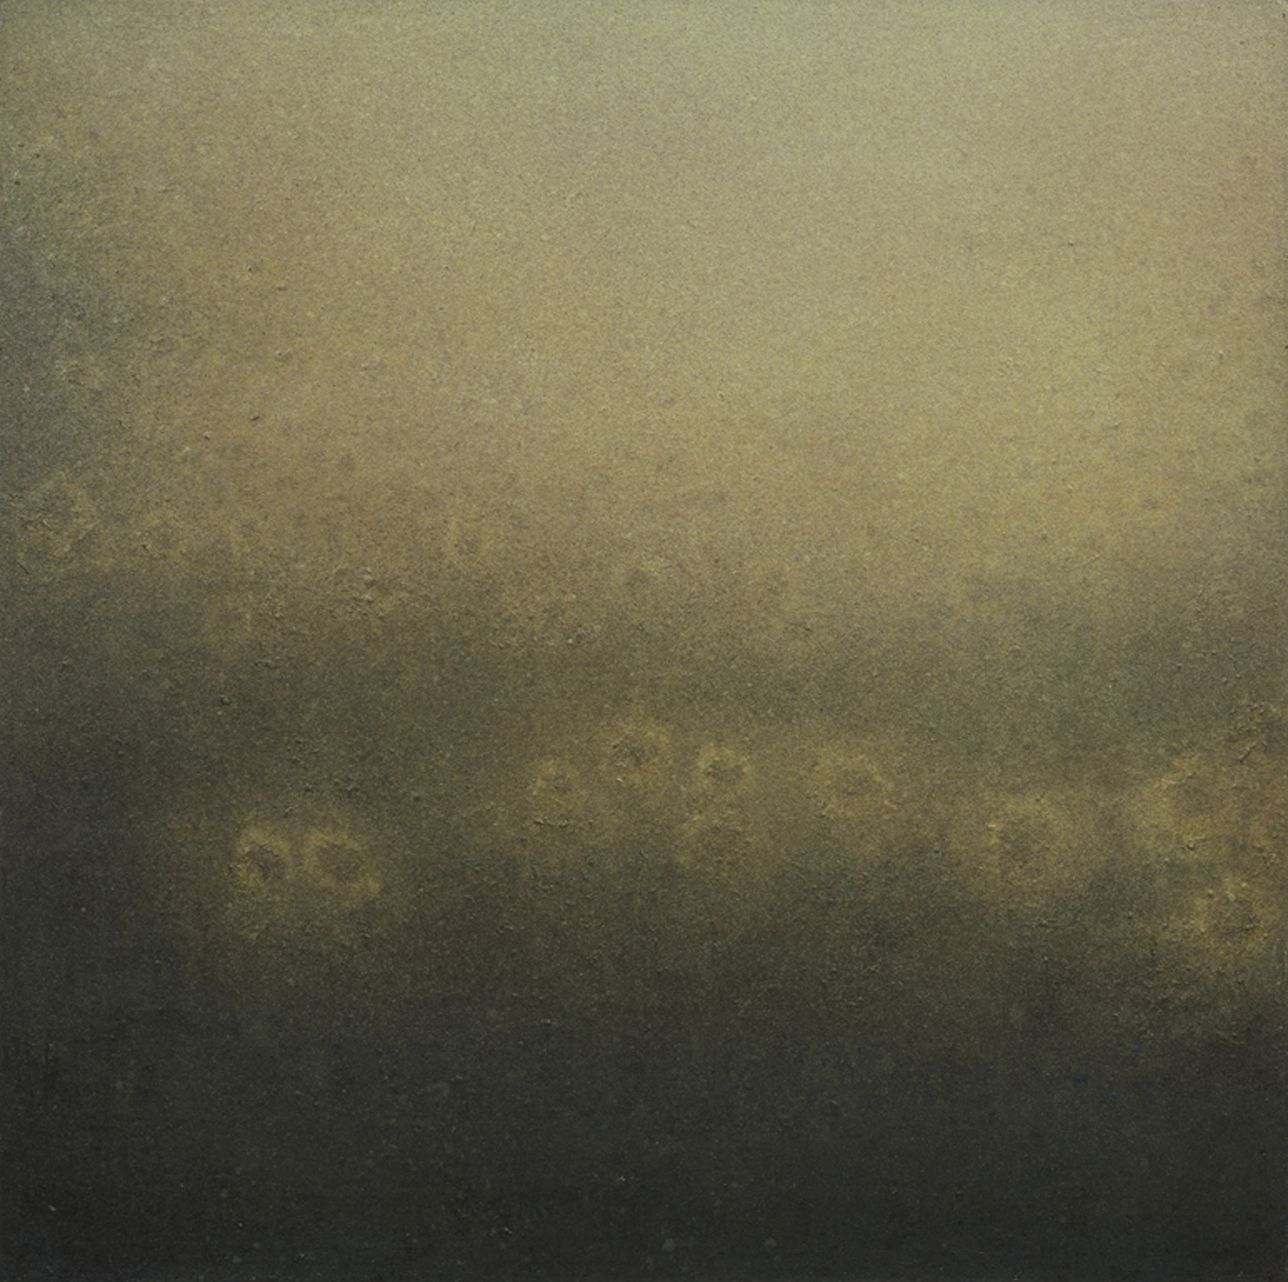 Wang Fengge 王凤鸽 (b. 1982), Sunflower Sea 葵海, 2012